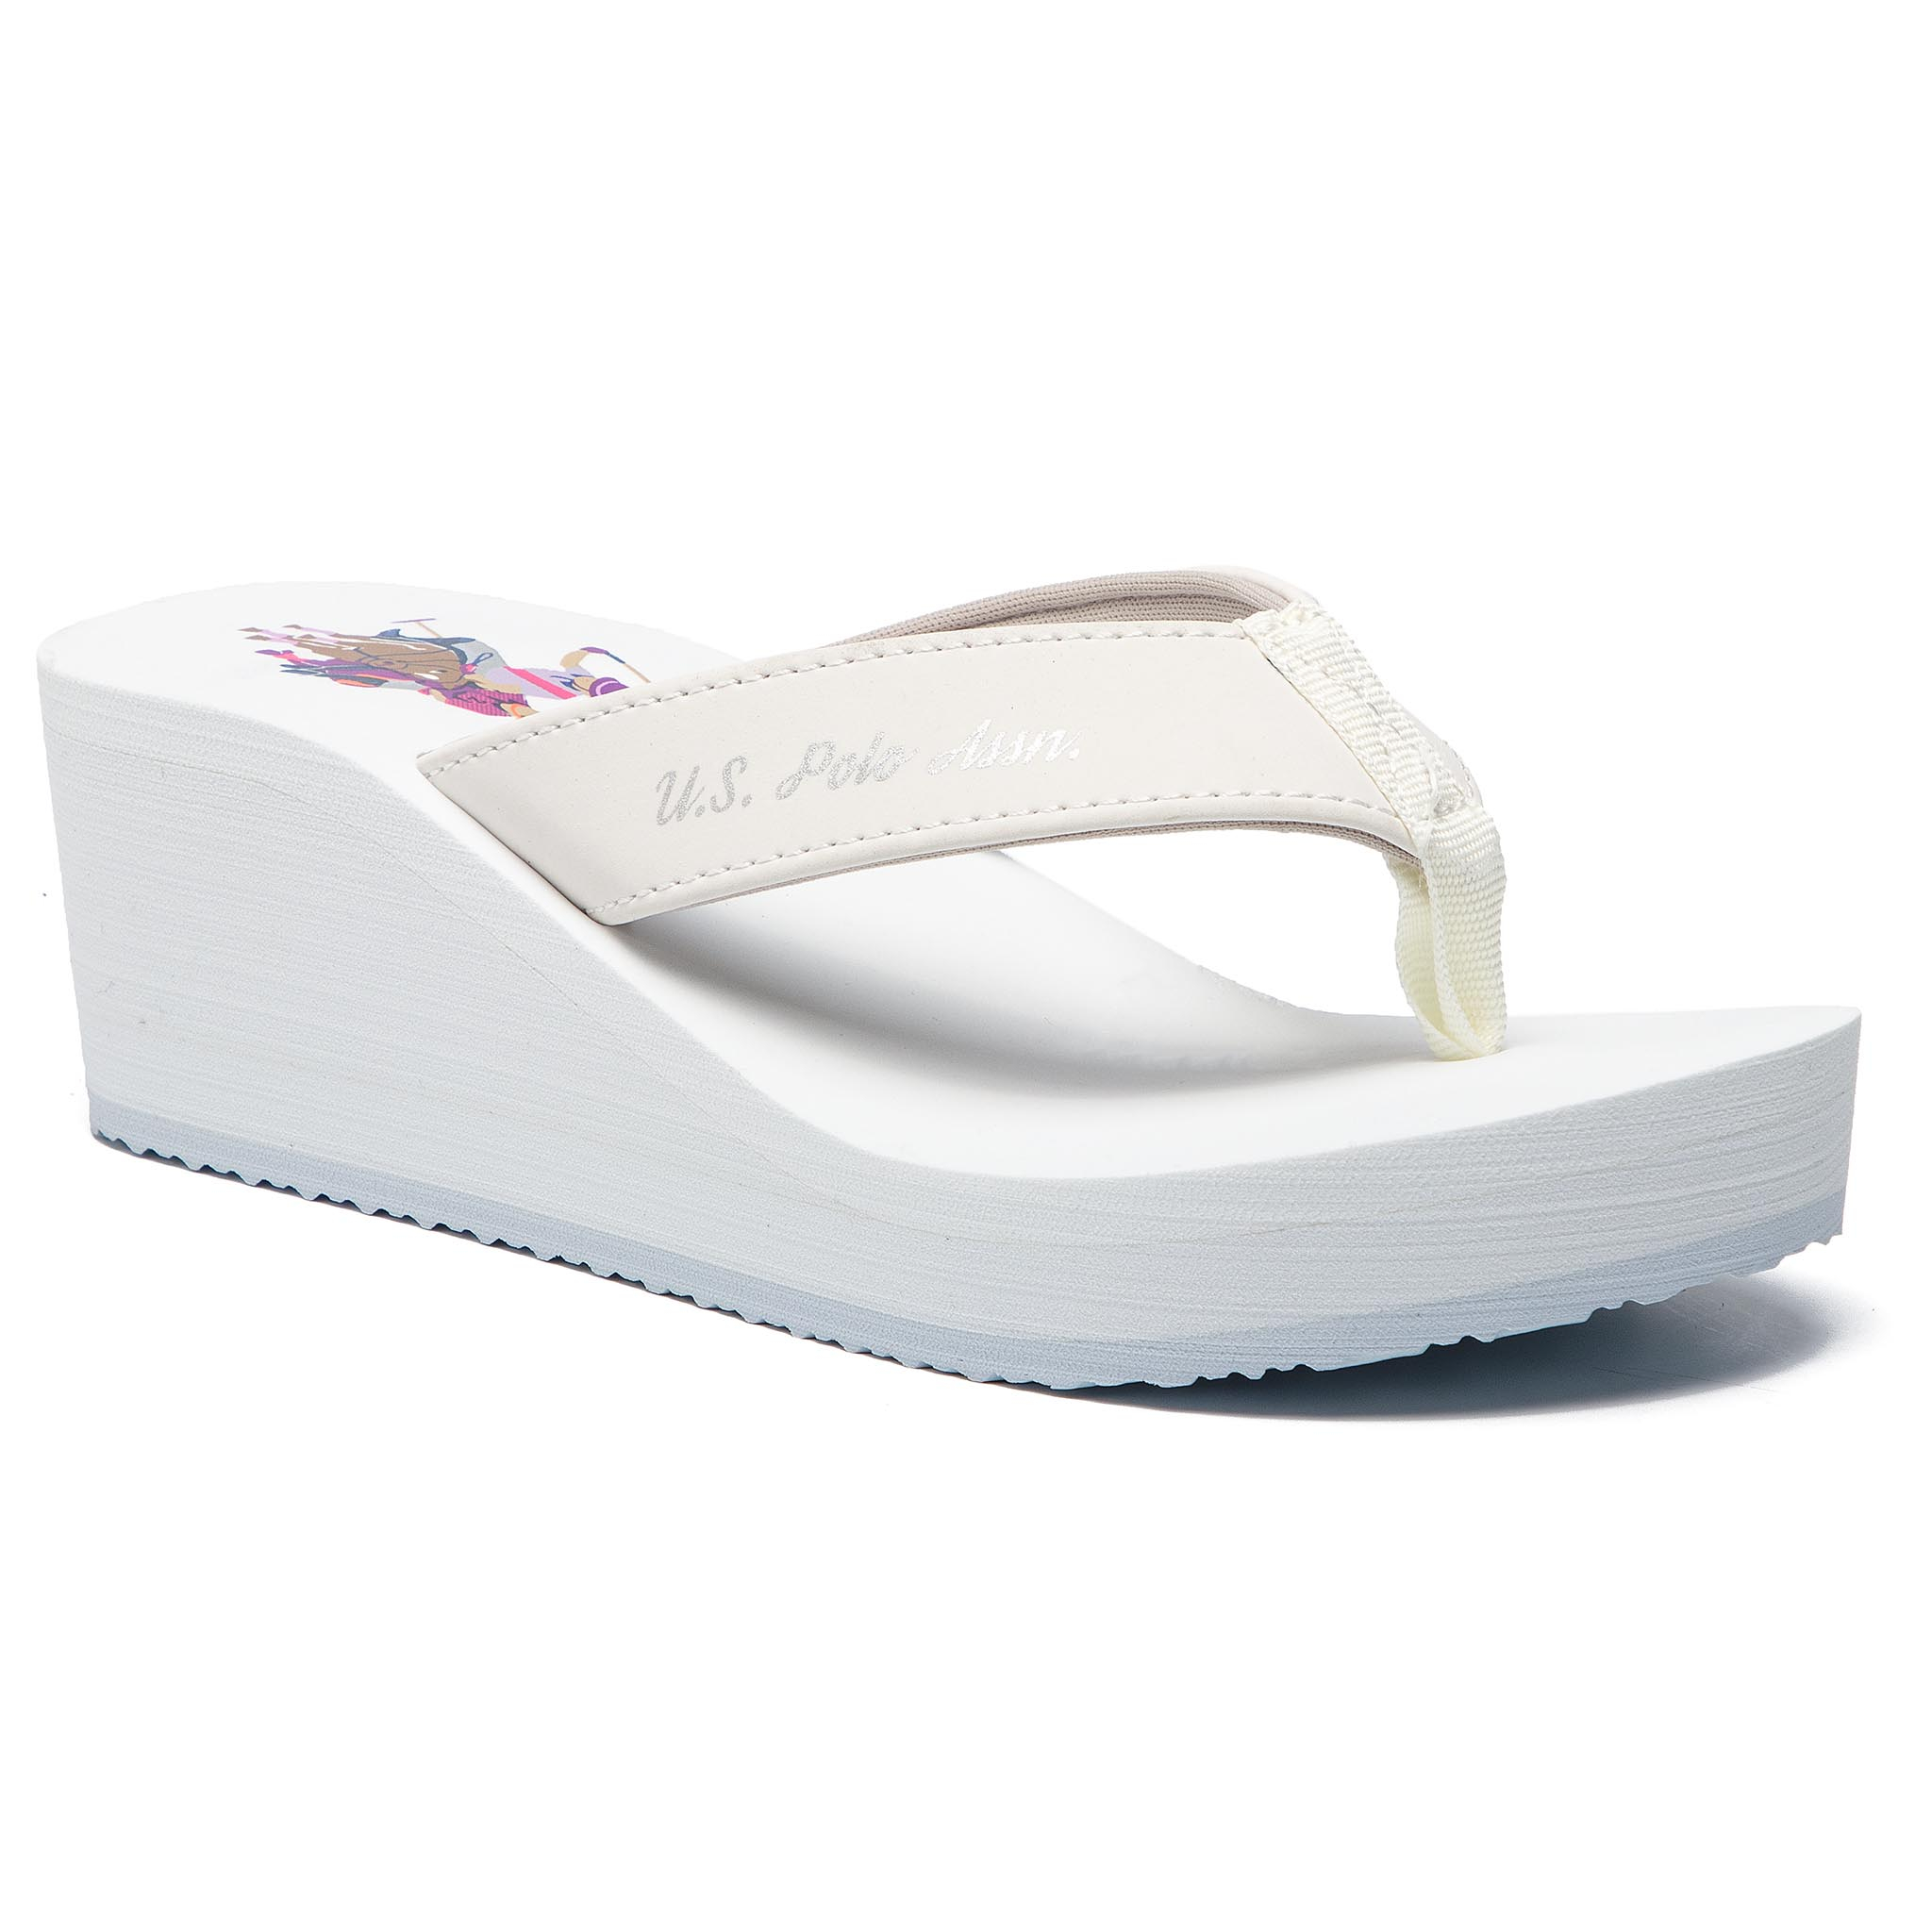 Flip flop U.S. POLO ASSN. - Tansy1 CHANT4199S8/Y1A Whi